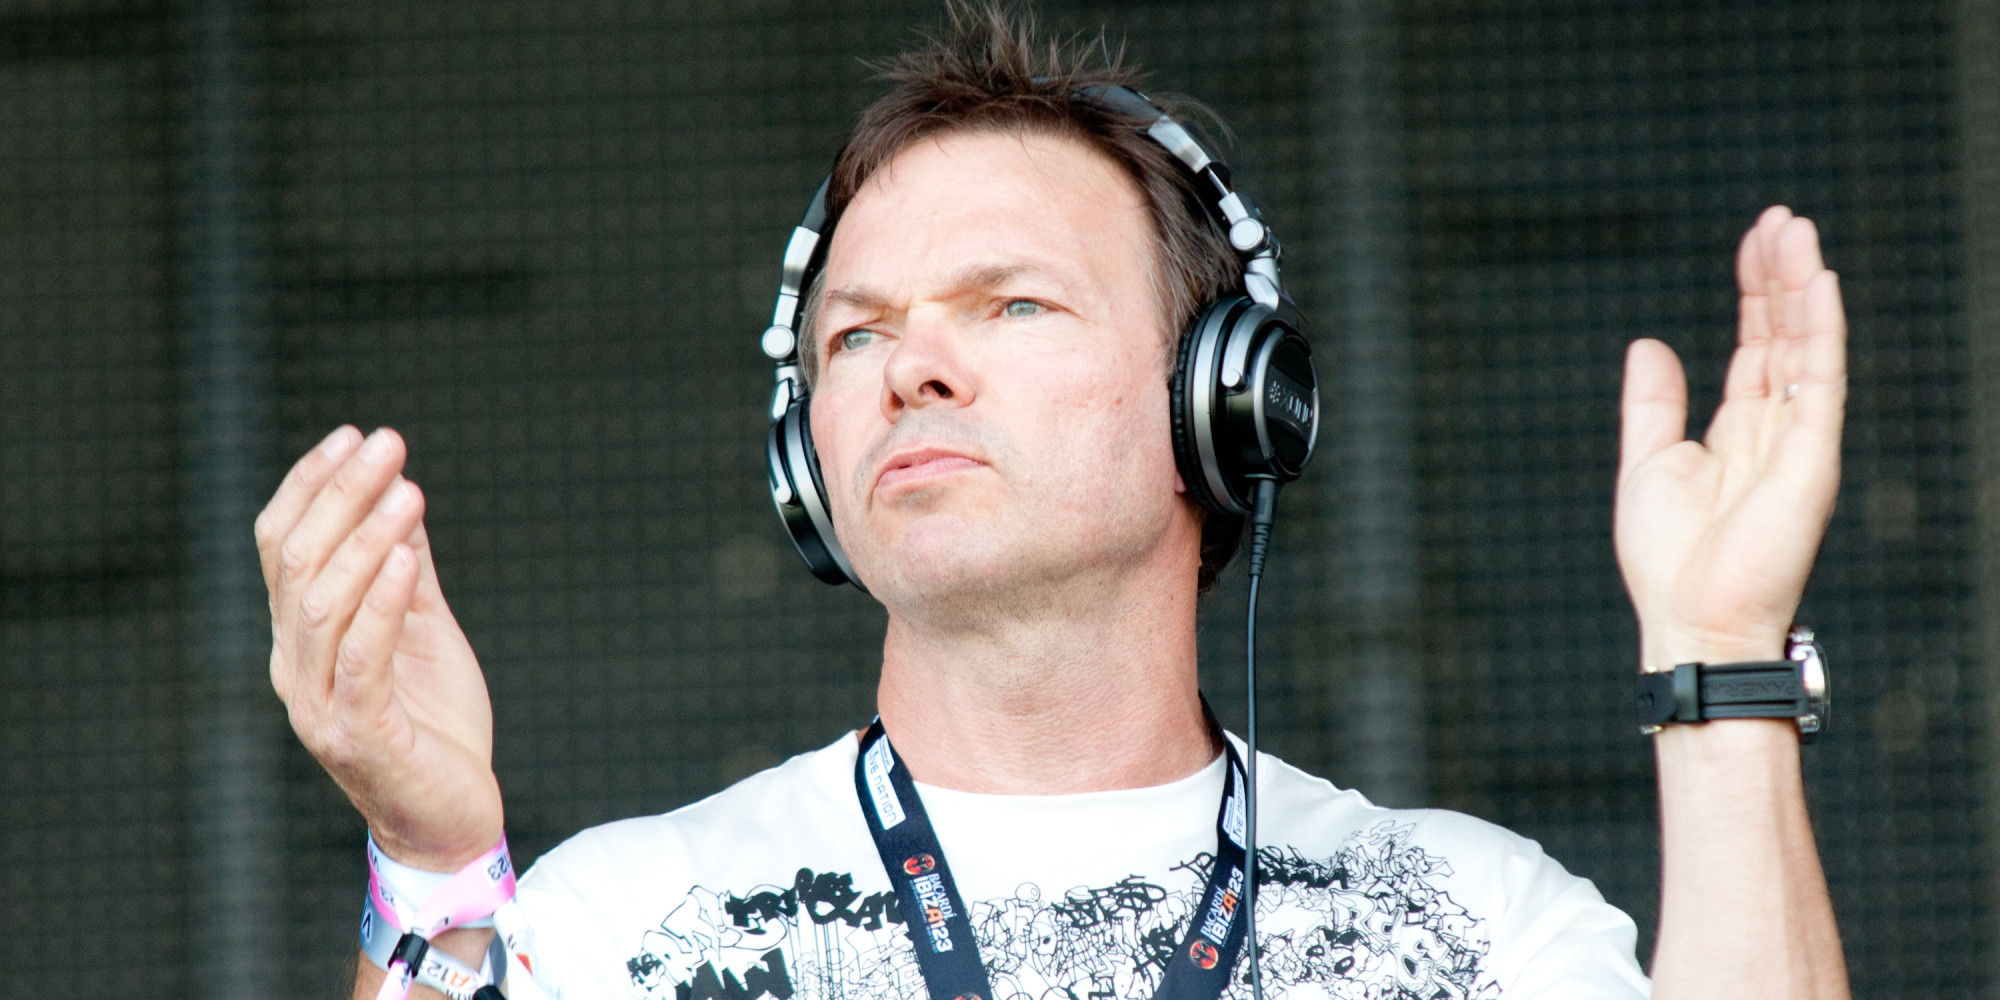 Massive attack call out pete tong for playing out a re for Ibiza proms cd